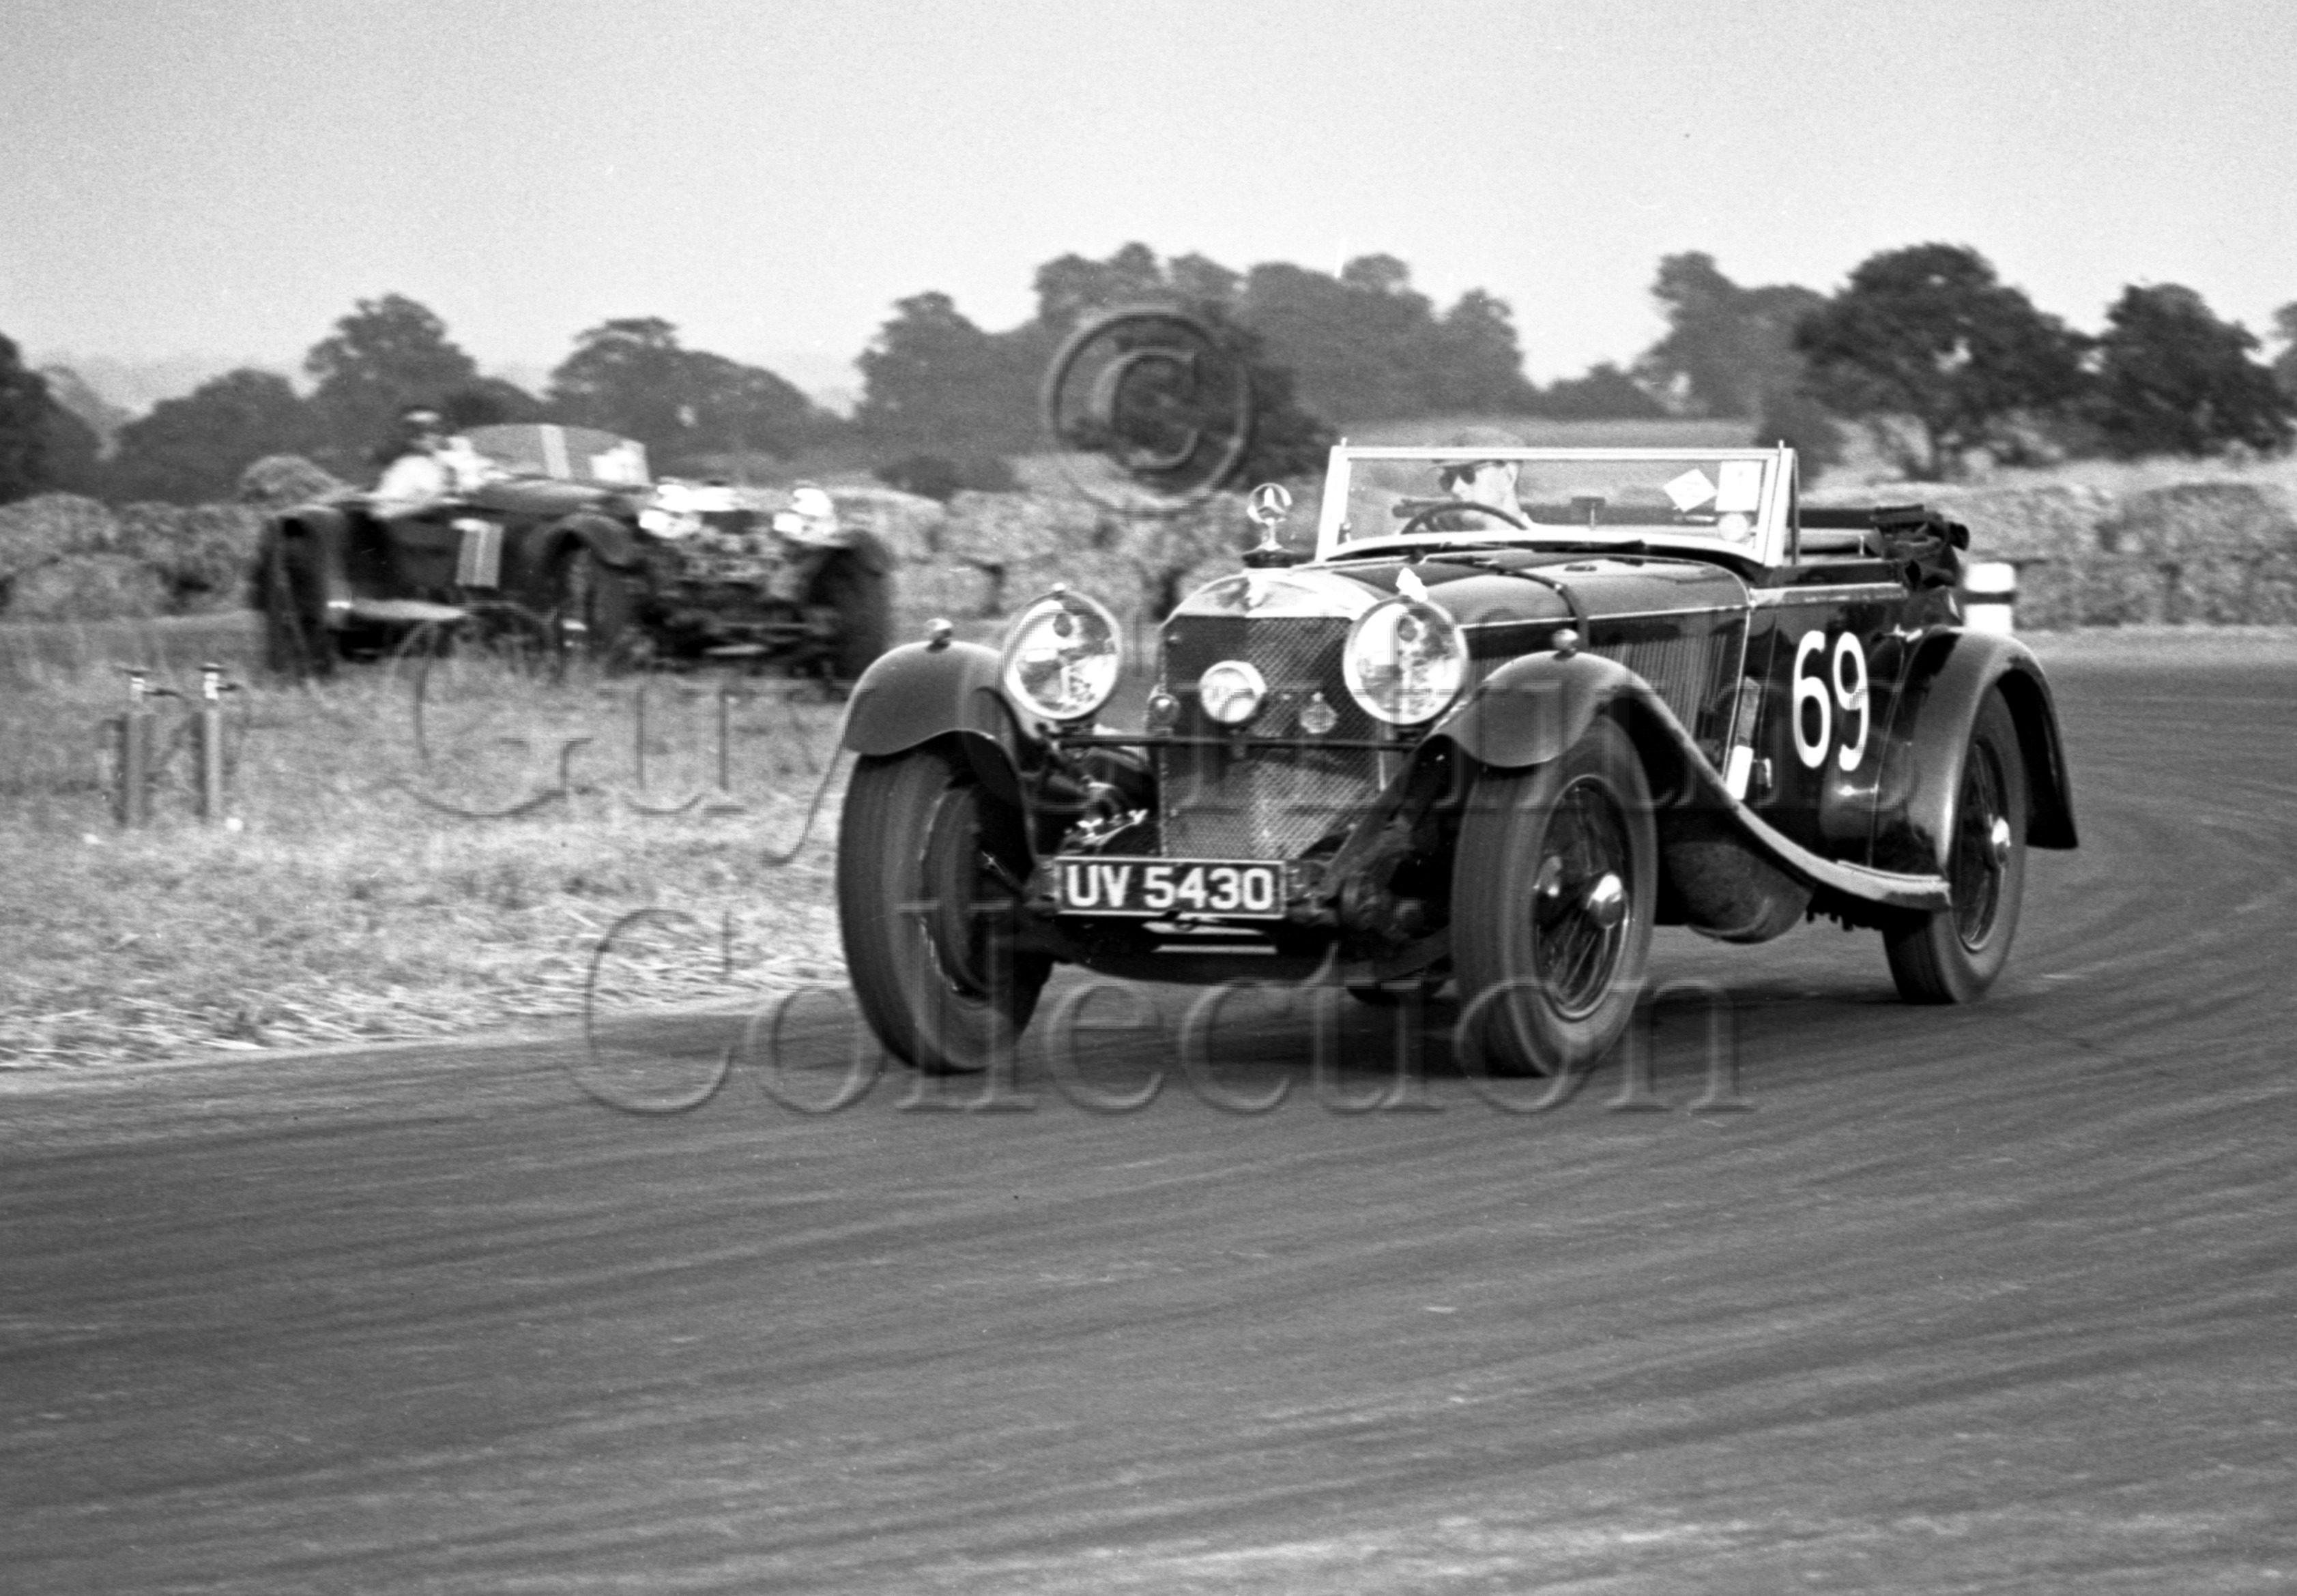 19-292–G-M-Crozier–Mercedes-Benz–Silverstone–23-07-1949.jpg - The Guy Griffiths Collection